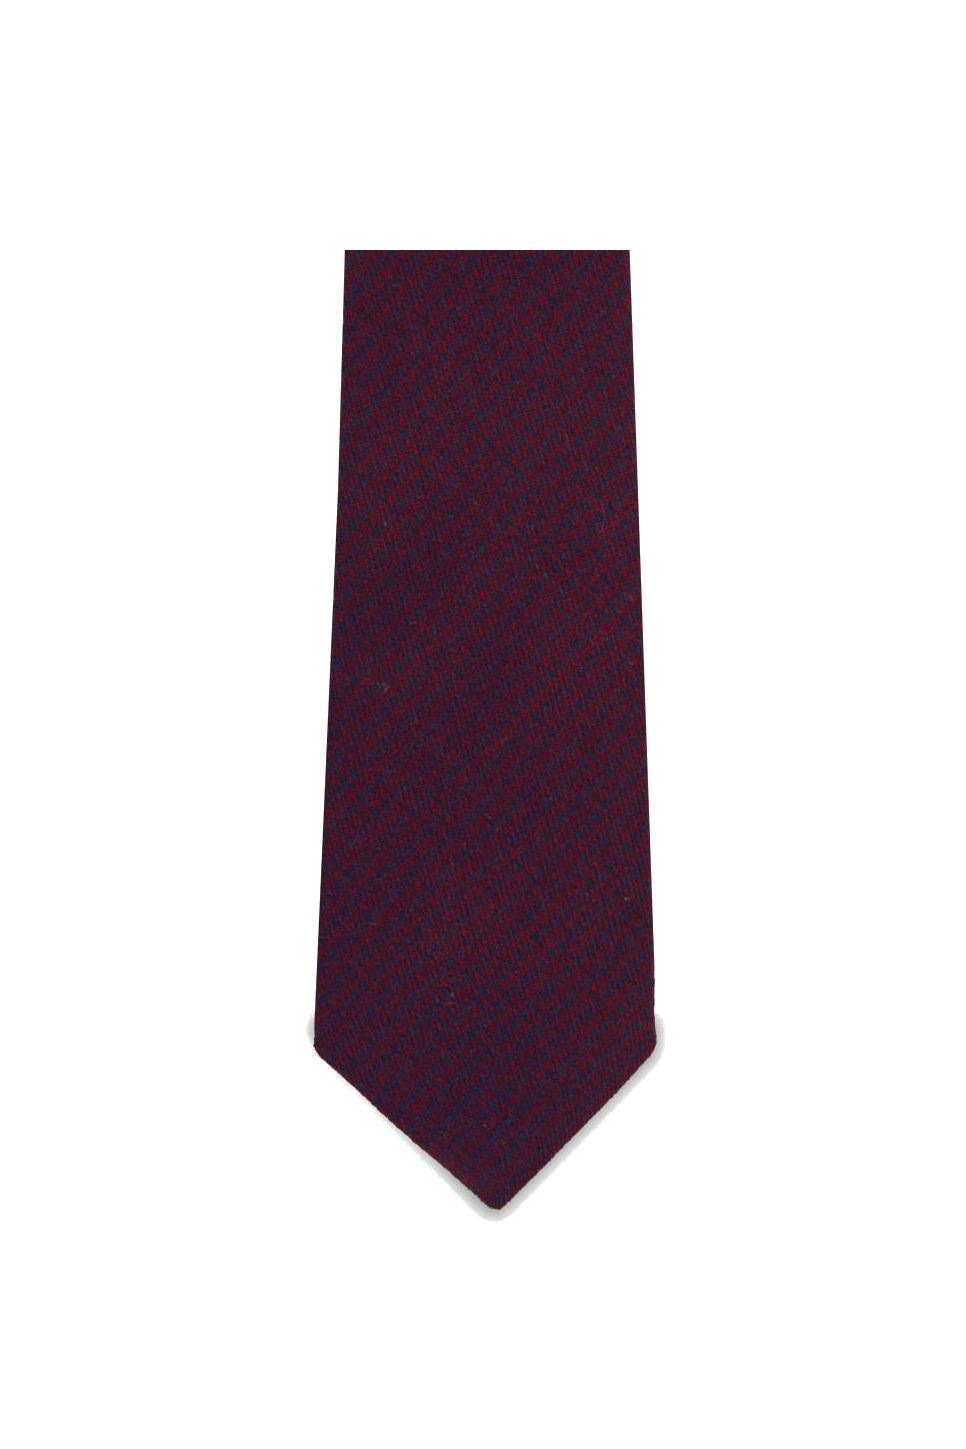 Pocket Square Clothing - The Norman Tie - Maroon